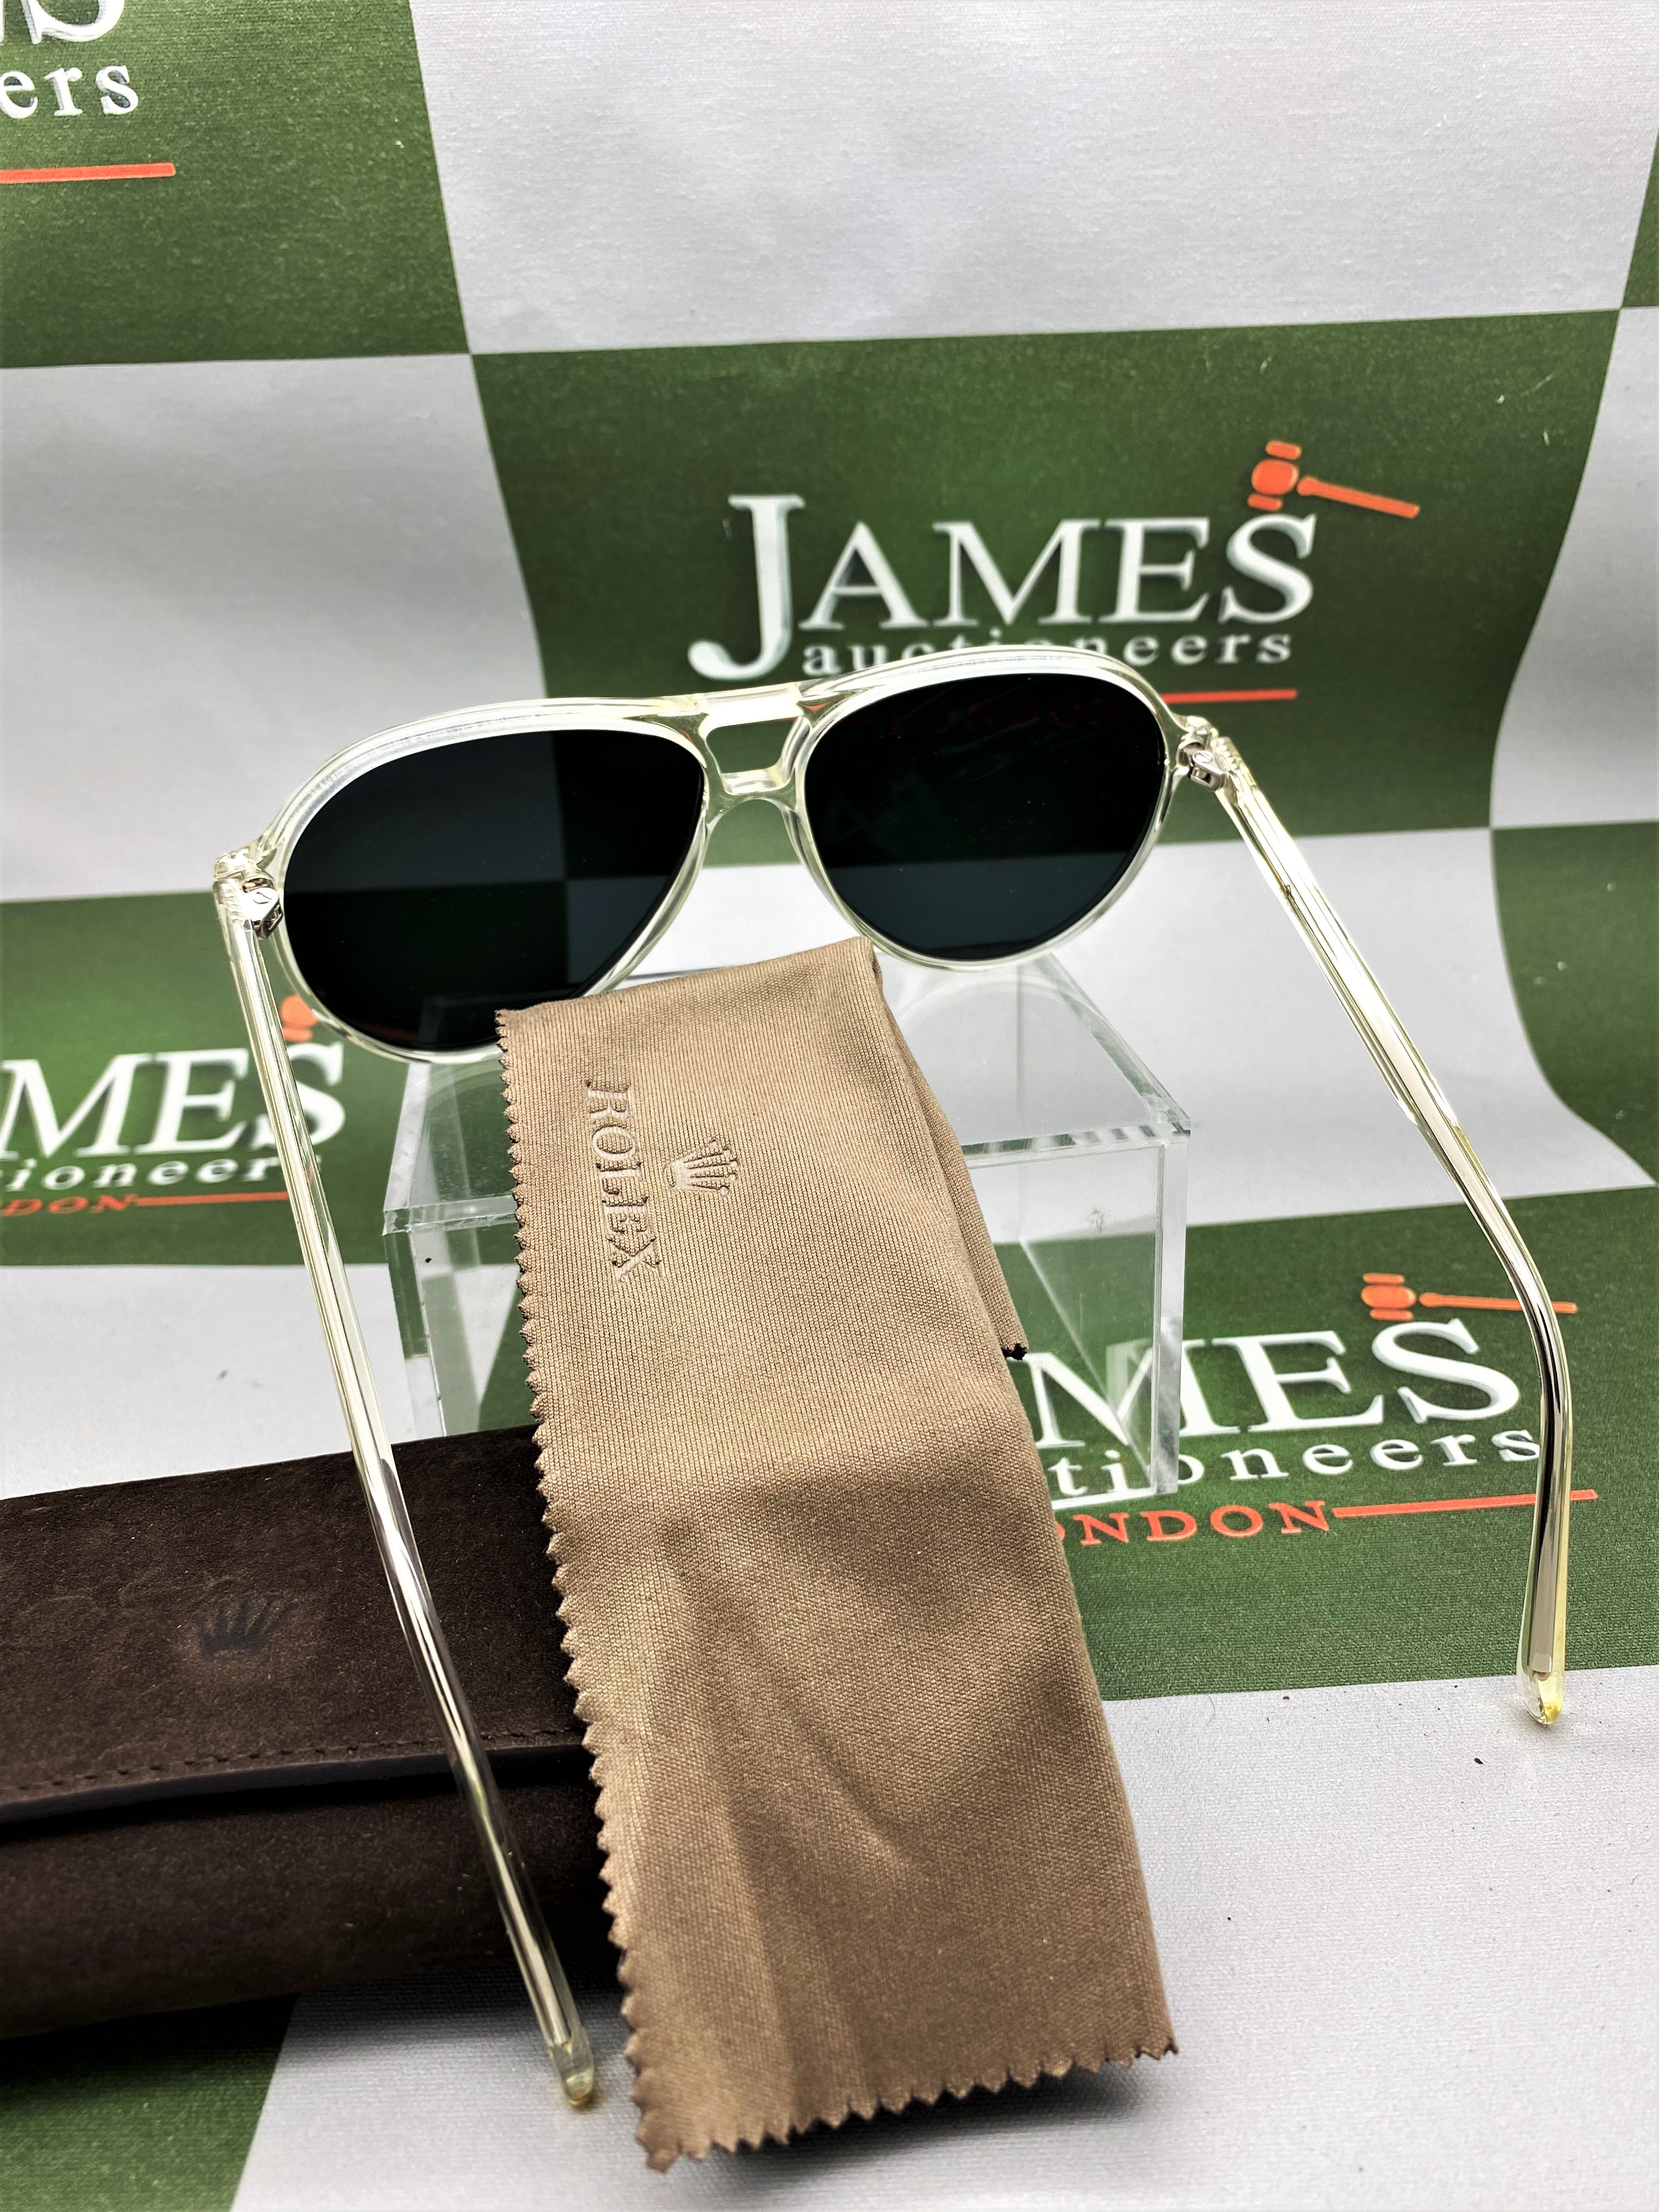 Rolex Official Merchandise Sunglasses-New Examples, Very Rare. - Image 3 of 7